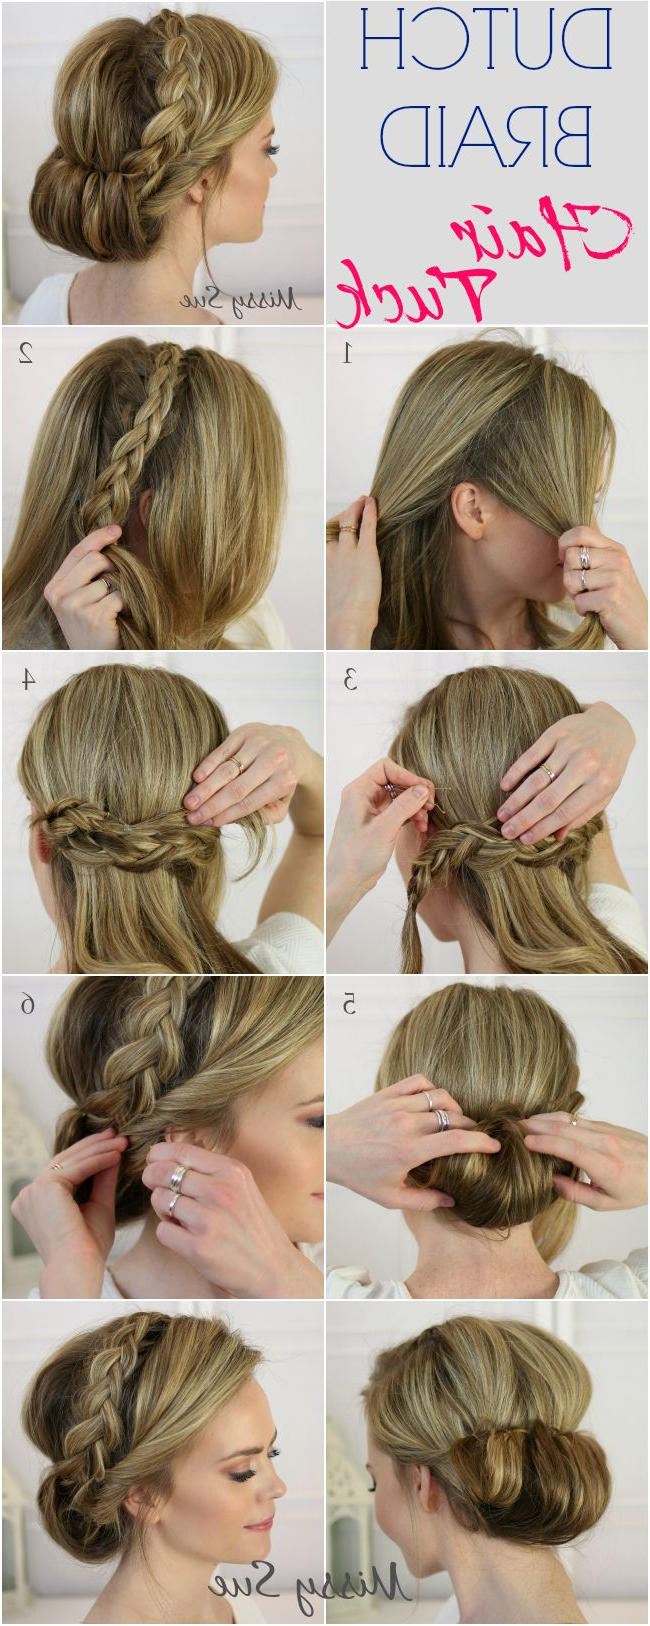 Latest Full Headband Braided Hairstyles Intended For 17 Stunning Dutch Braid Hairstyles With Tutorials – Pretty (View 12 of 20)